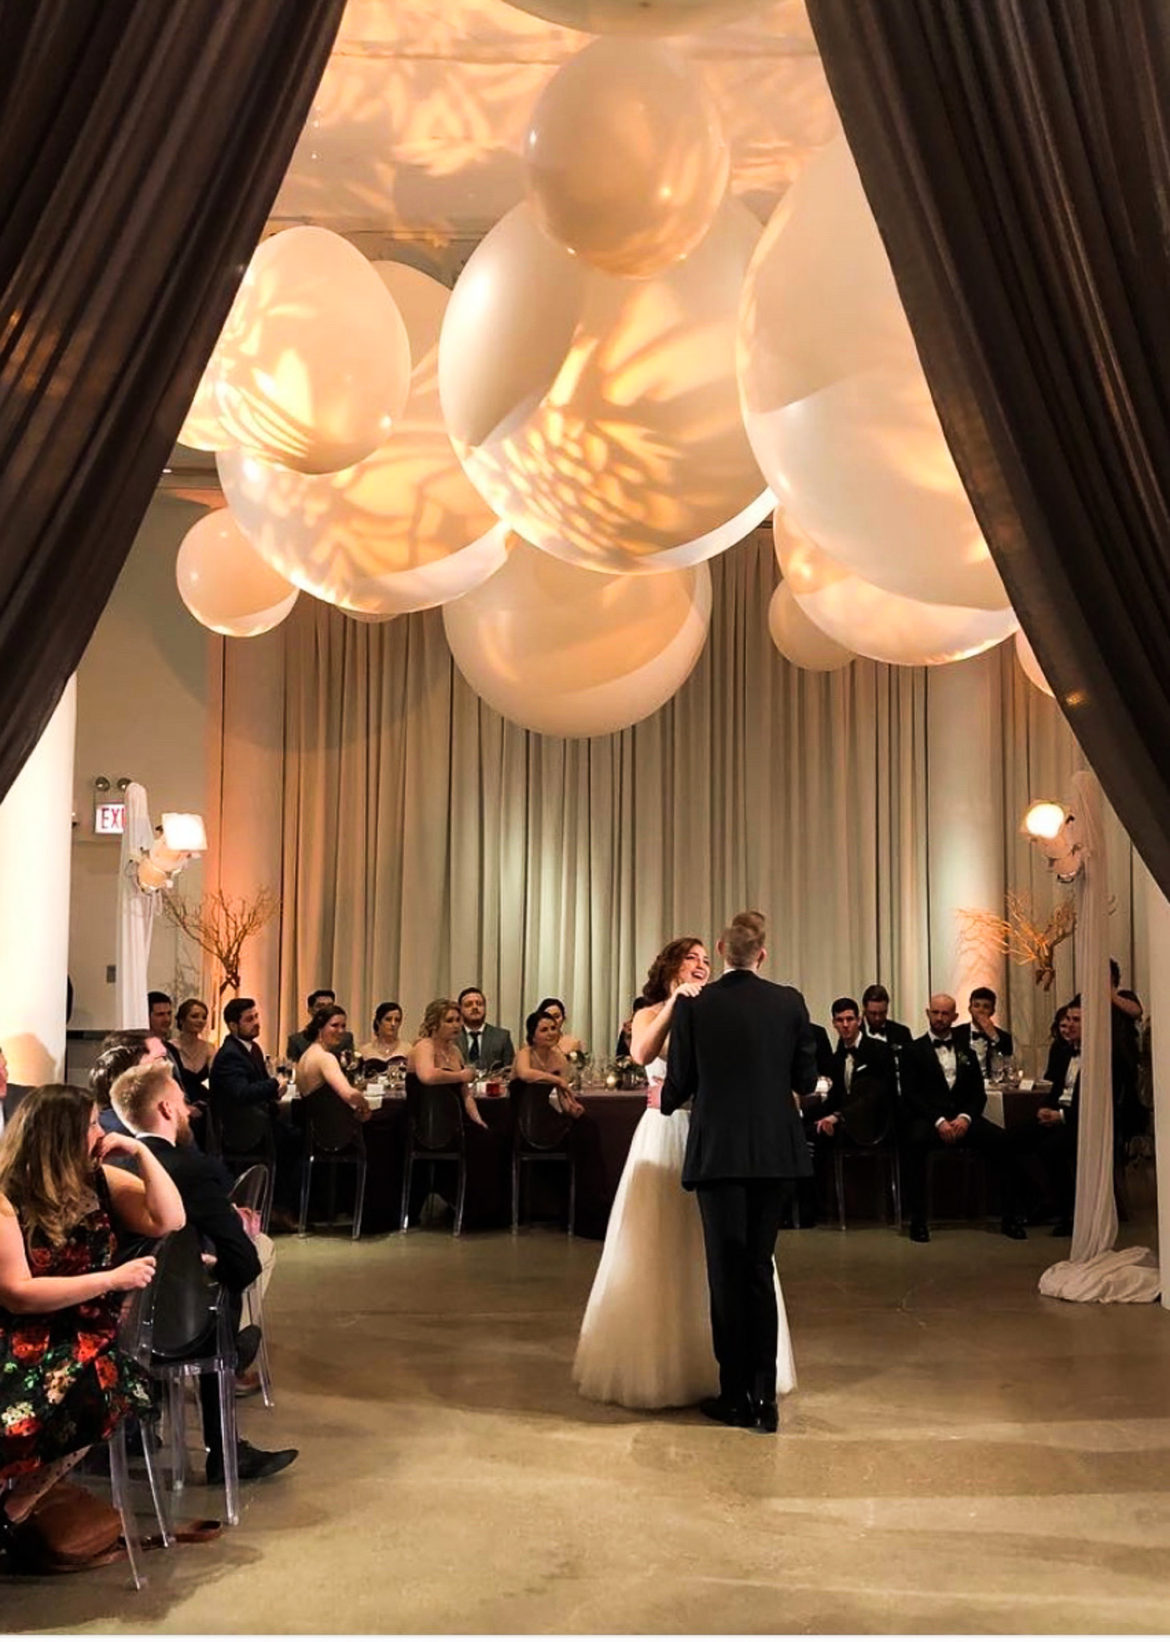 Elegant_Event_Lighting_Chicago_Chez_Wedding_First_Dance_Giant_Balloon_Chanedliers_Pattern_Lighting